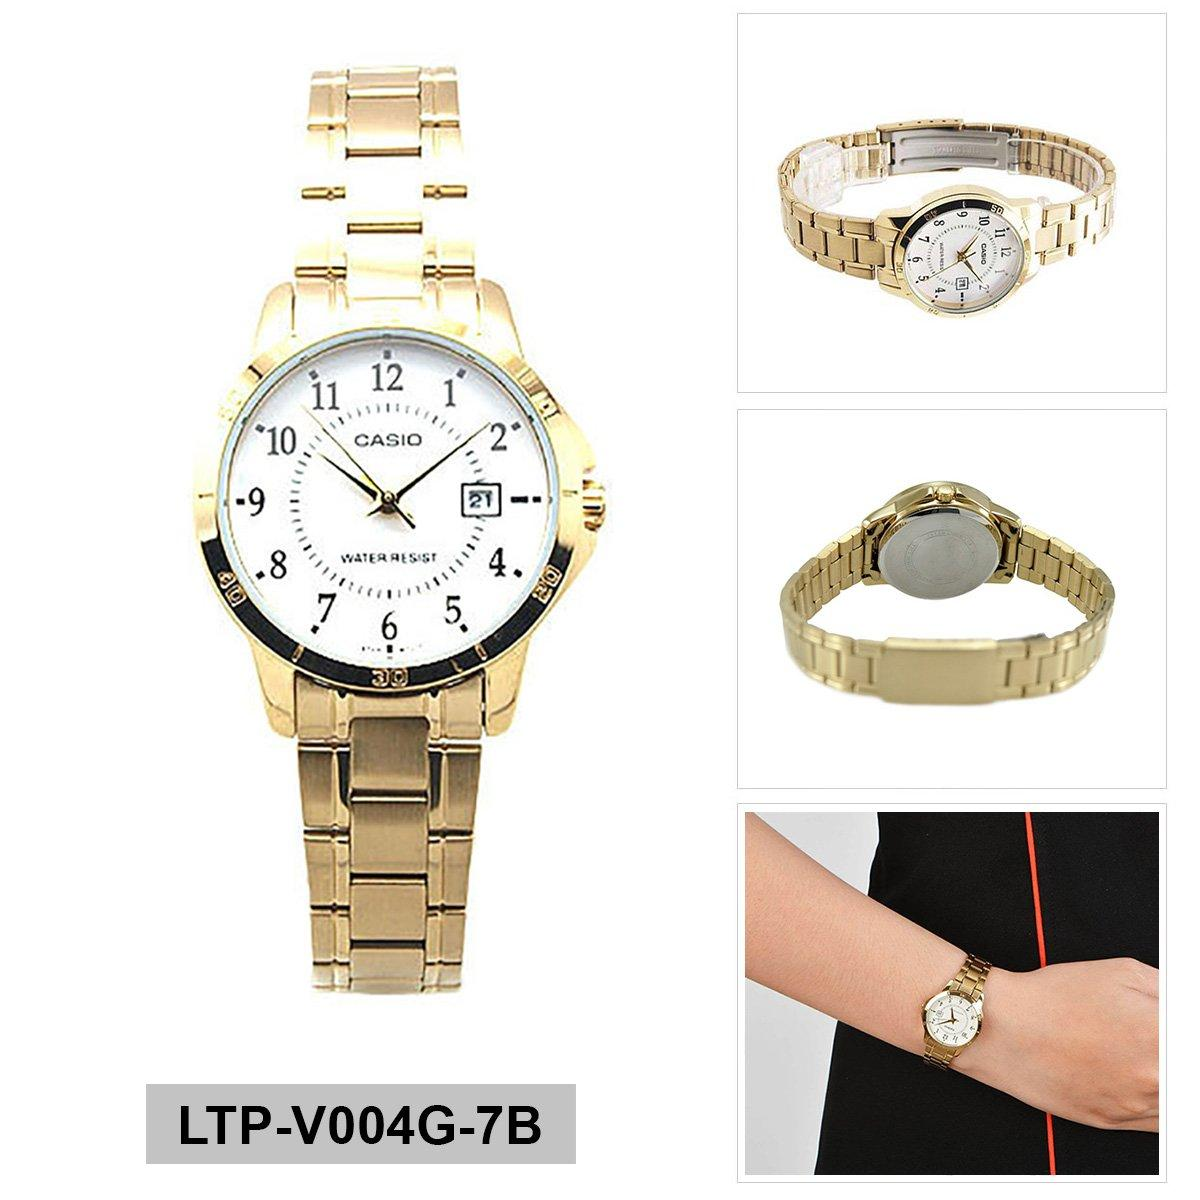 How To Get Casio Watch Standard Gold Stainless Steel Case Stainless Steel Bracelet Ladies Ltp V004G 7B